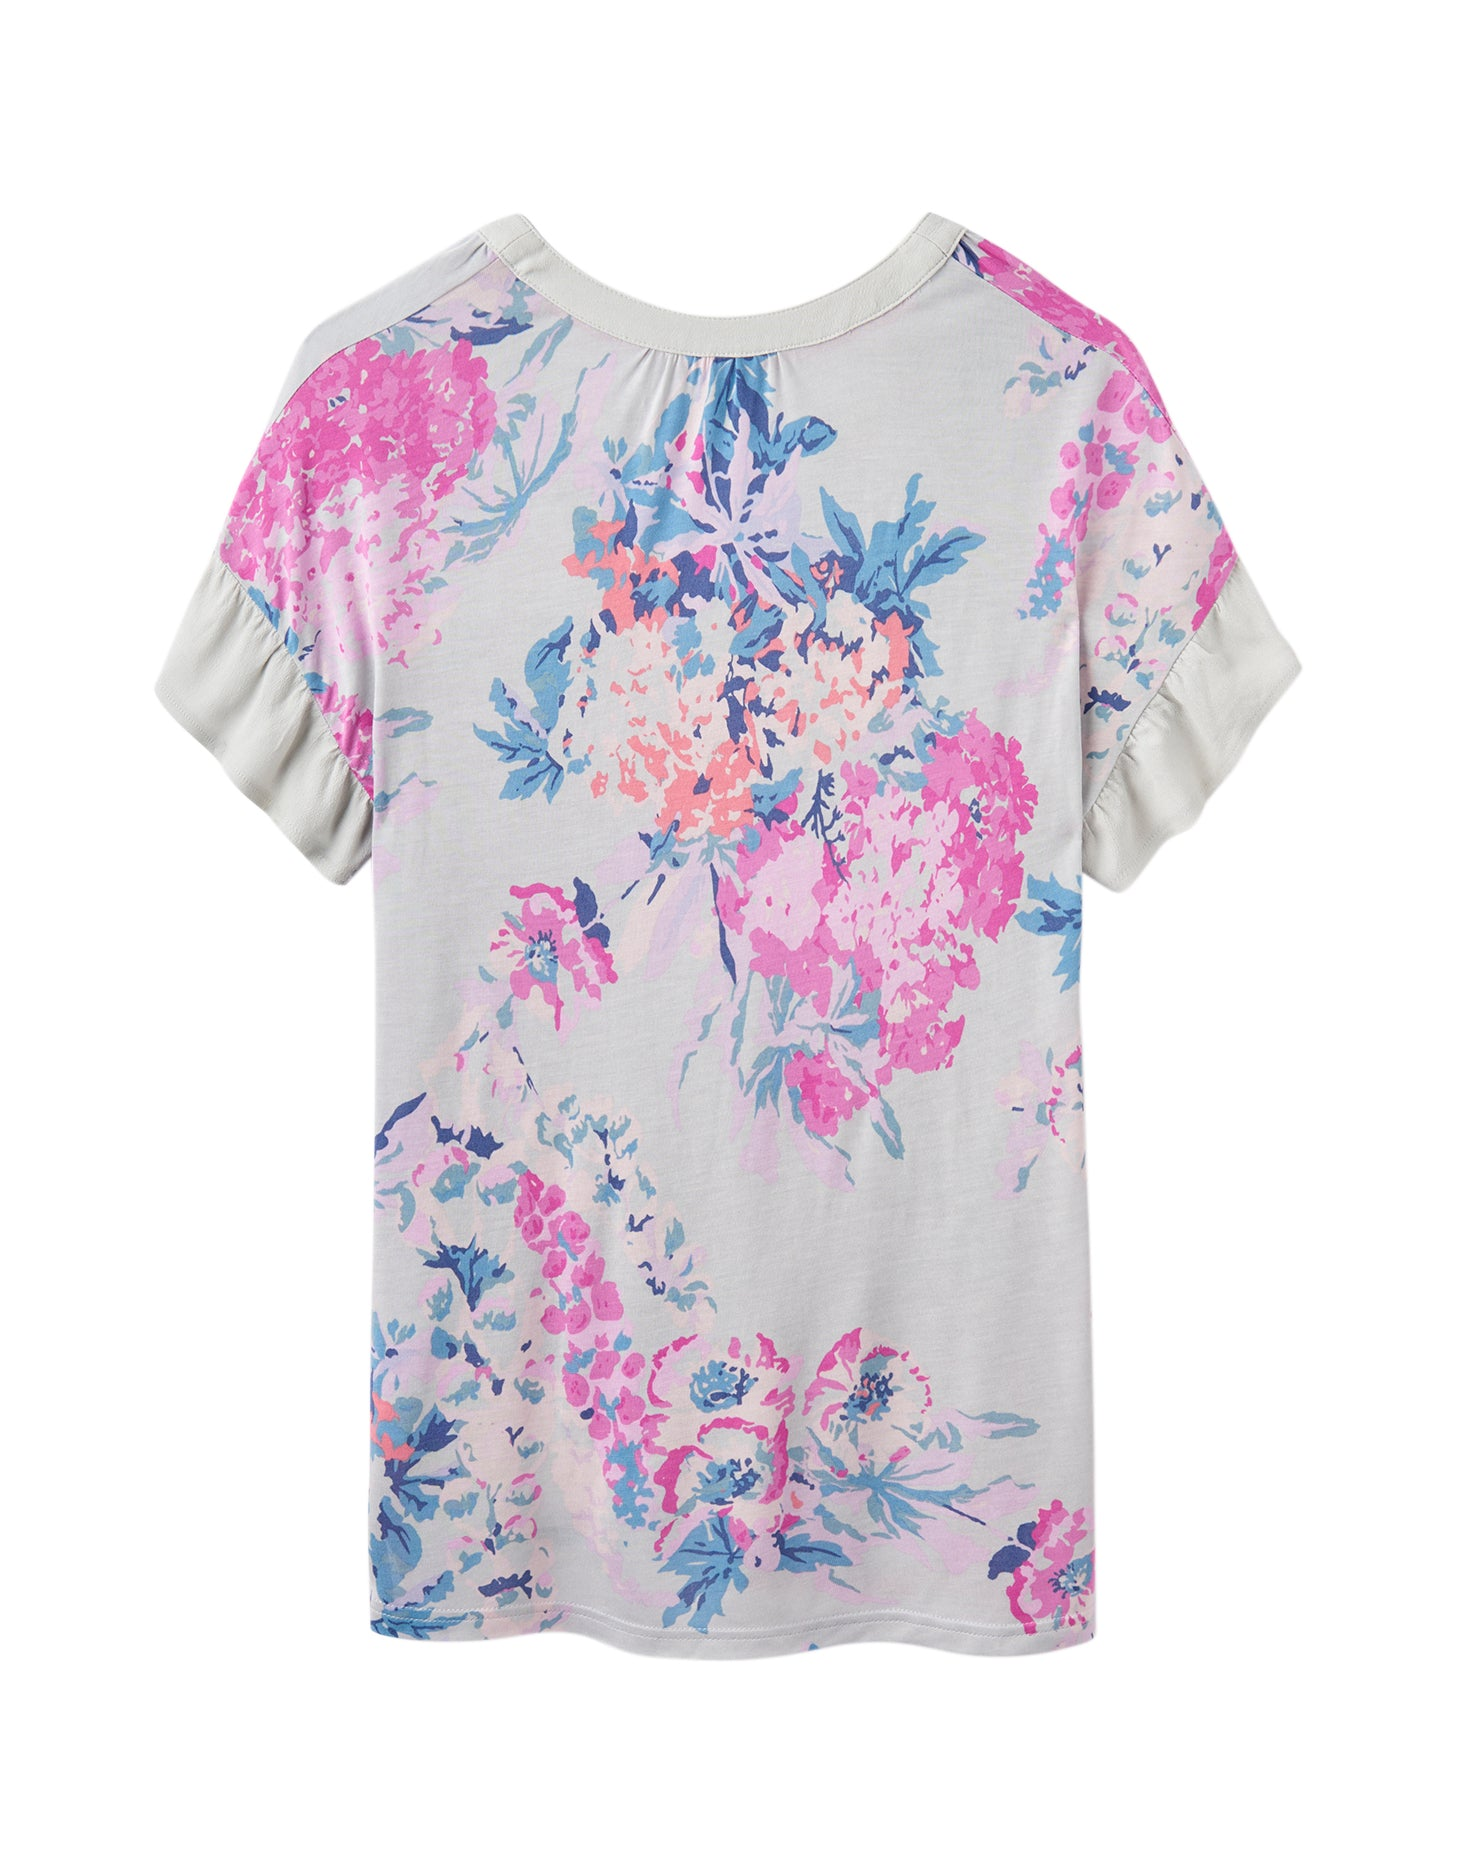 Joules Katherina Woven Top for Ladies in Grey Floral